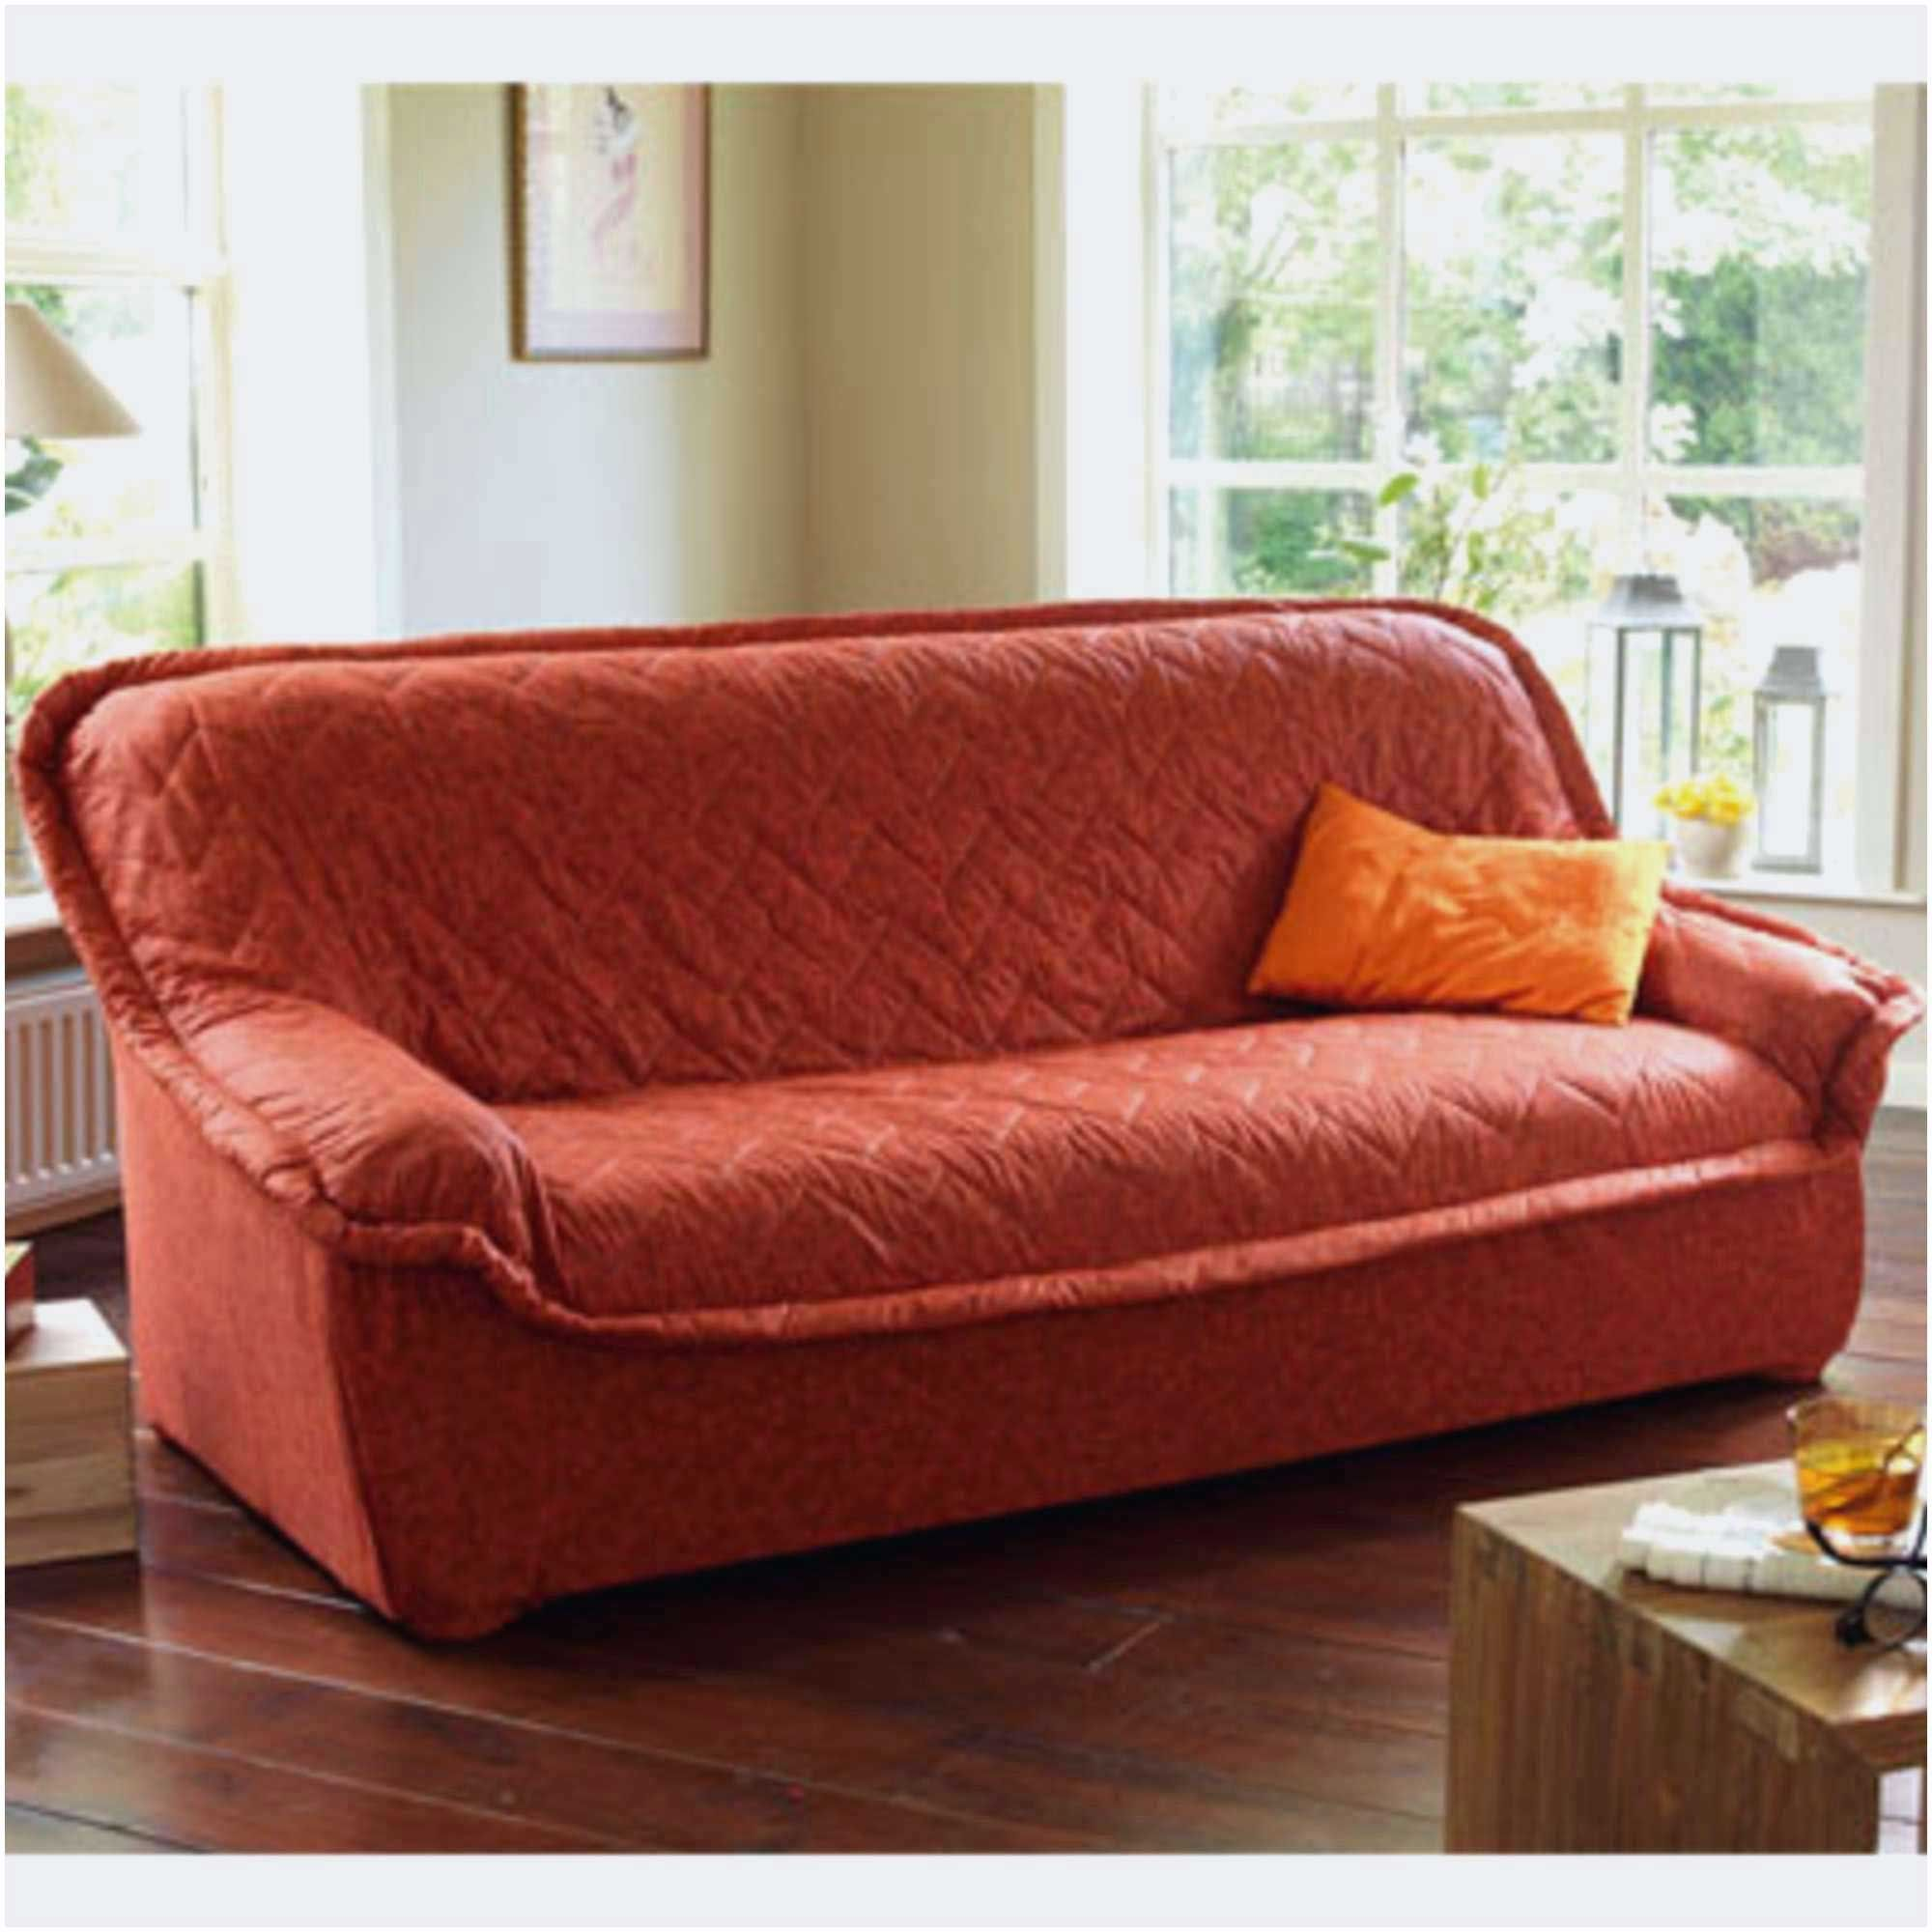 Canape Chesterfield Cuir Pas Cher Canape Chesterfield Cuir Vieilli 44 Vaste Canape Club Cuir Vieilli En 2020 Housse Canape Angle Housse Canape Canape Angle Convertible